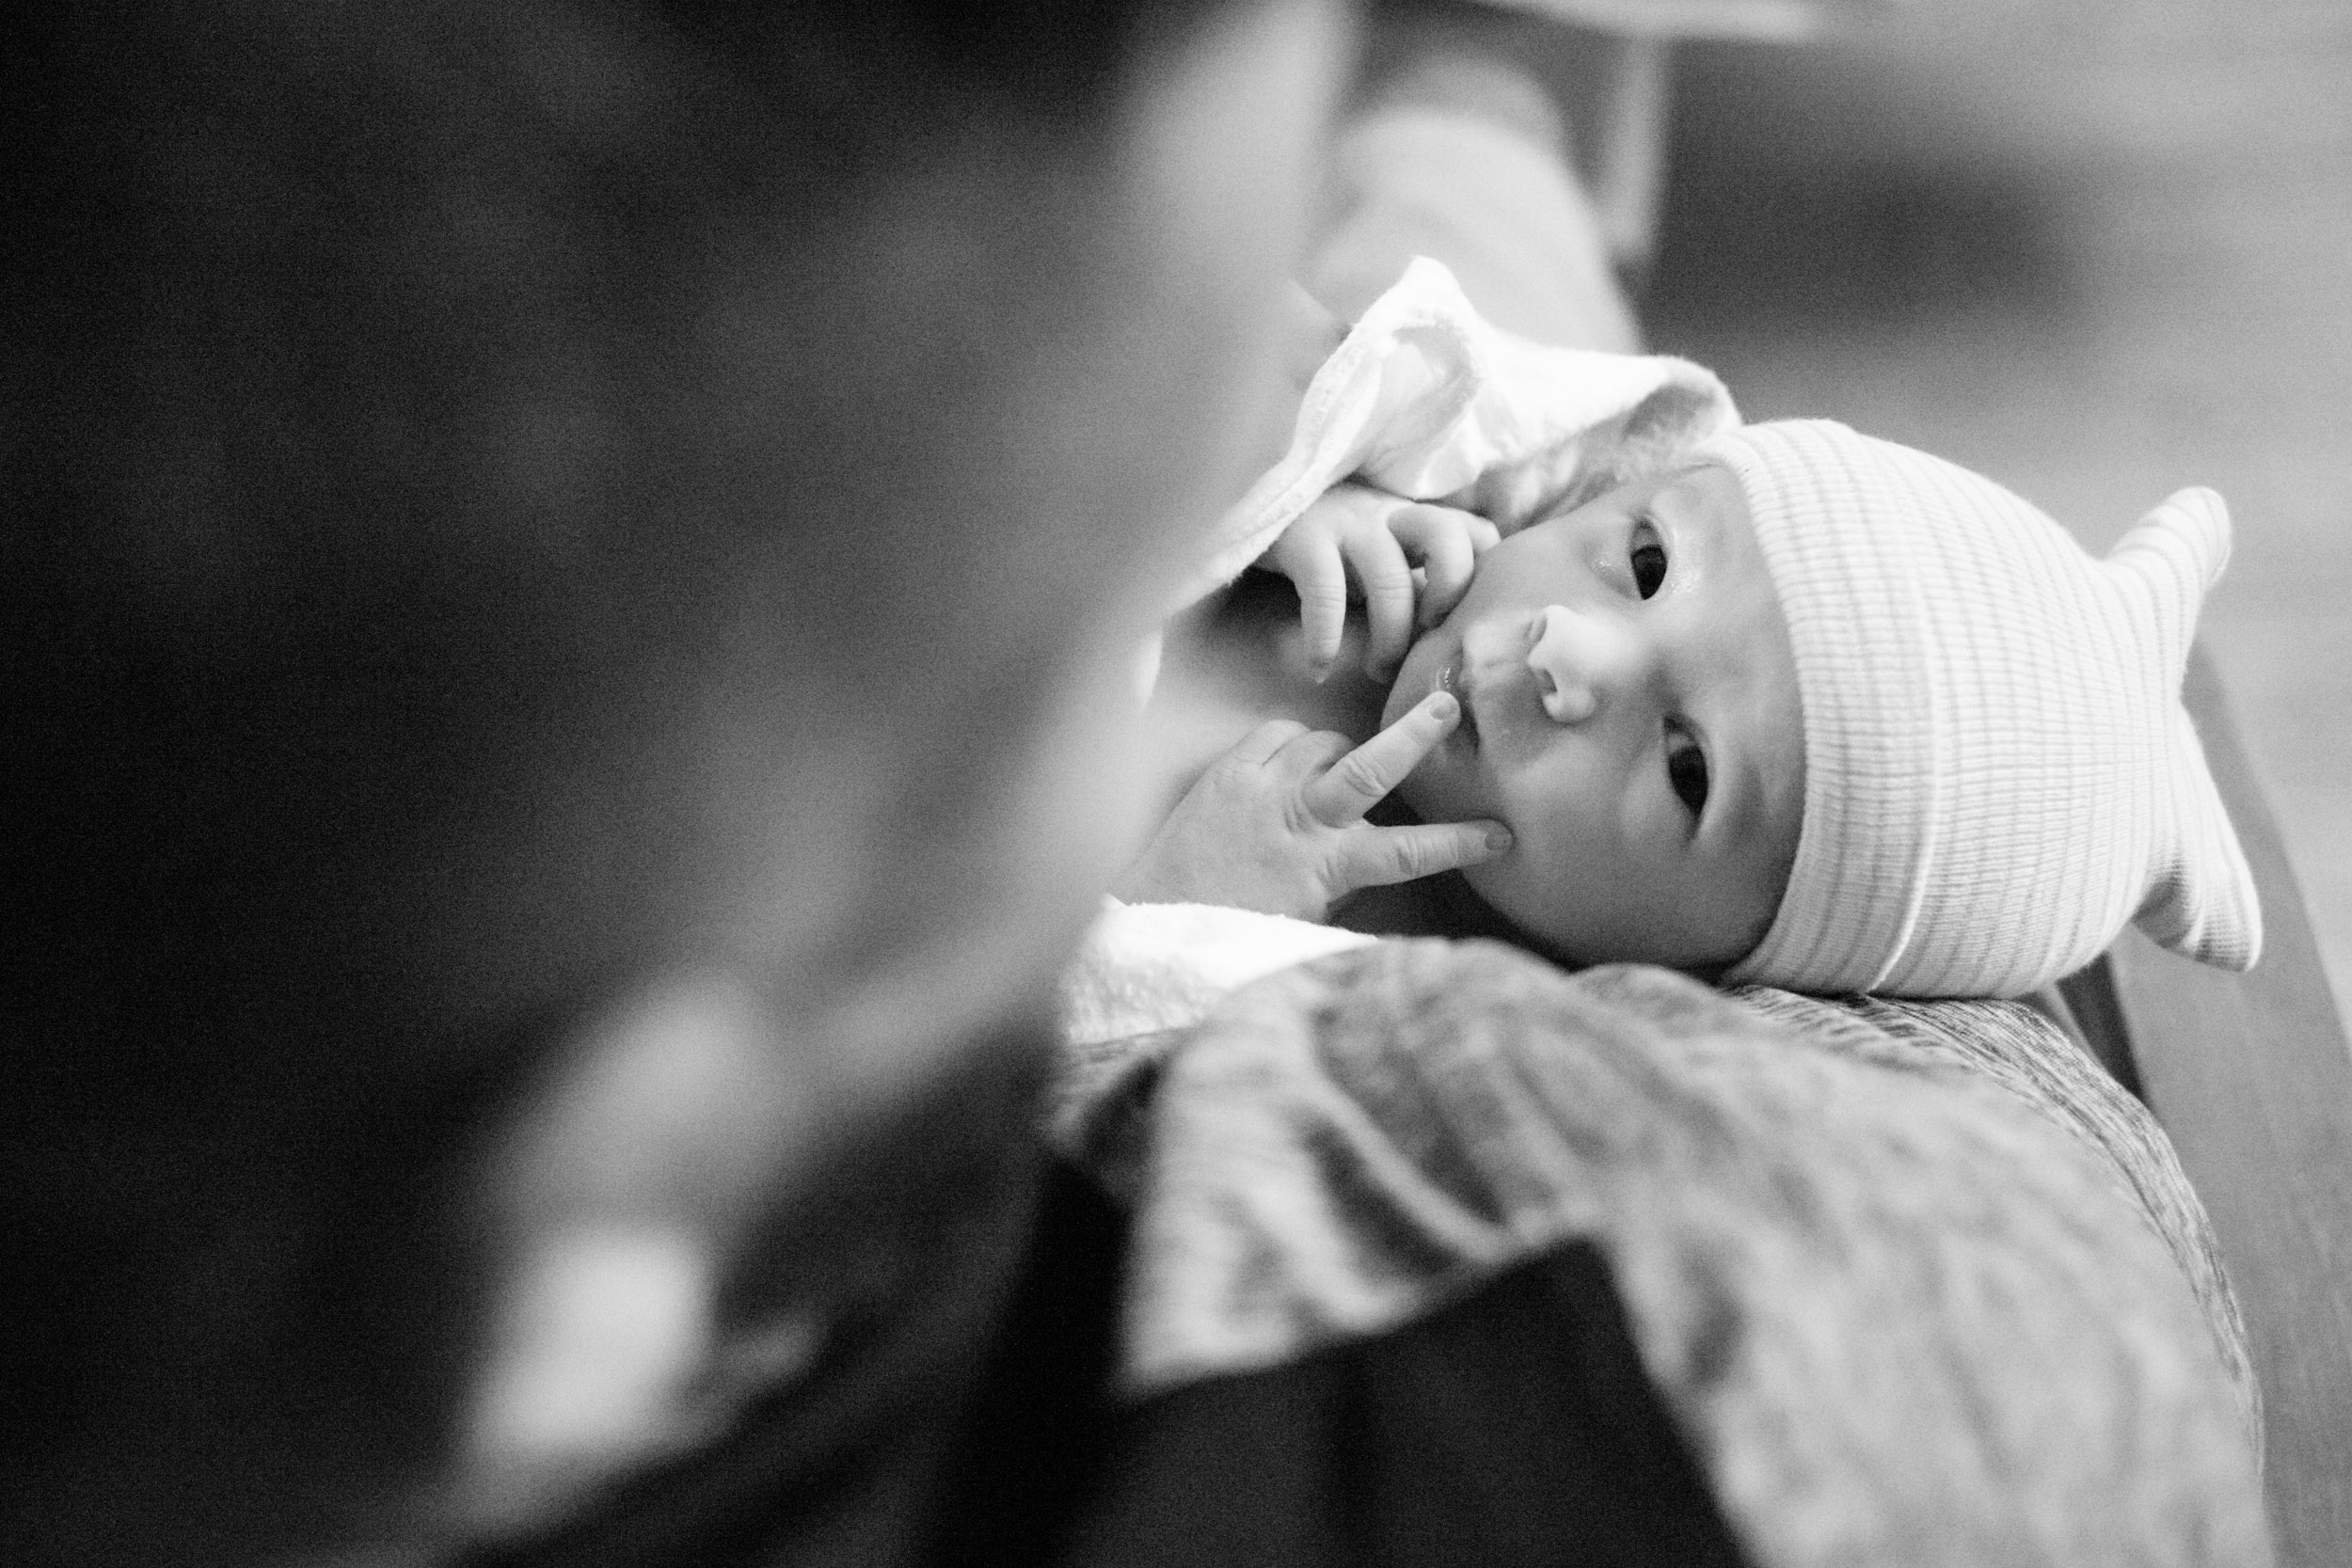 newborn baby looking up at the camera